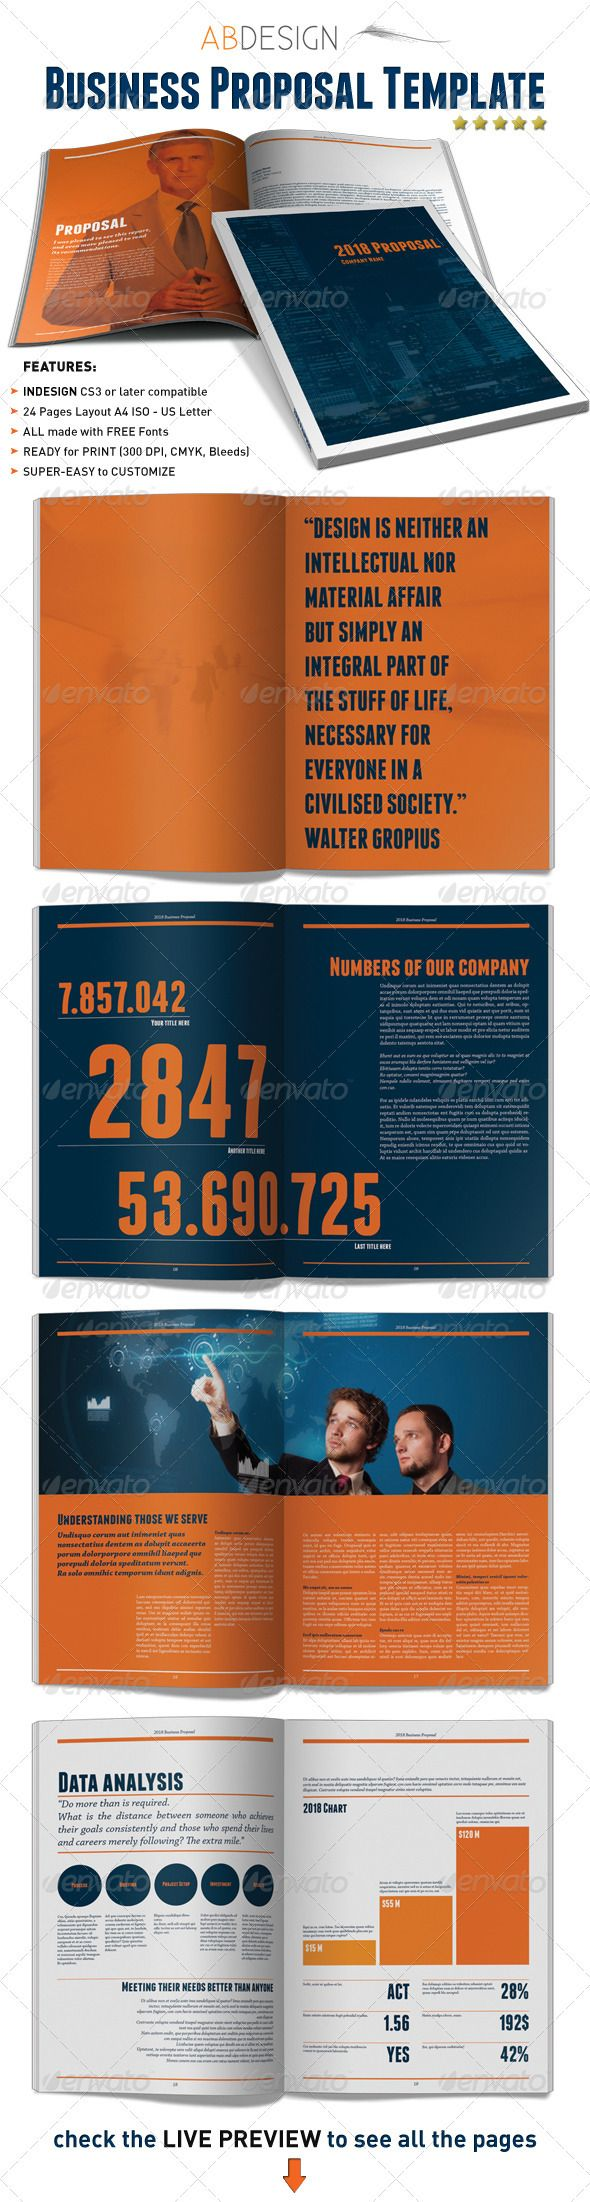 Business Proposal Indesign Template 122 best Business